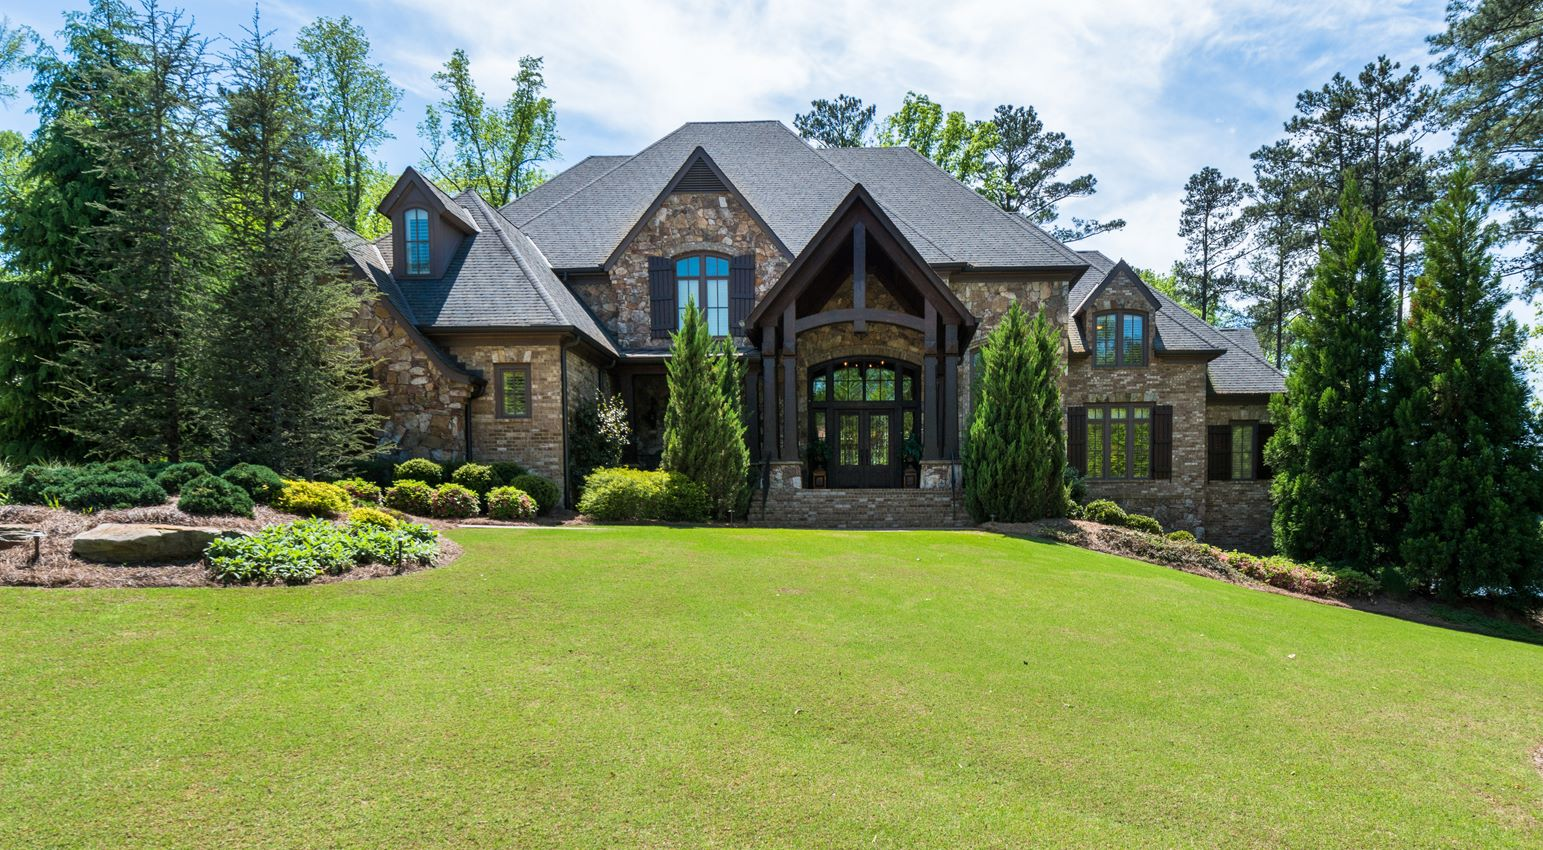 獨棟家庭住宅 為 出售 在 Manor Home on Lake in The River Club 4644 Whitestone Way Suwanee, 喬治亞州, 30024 美國